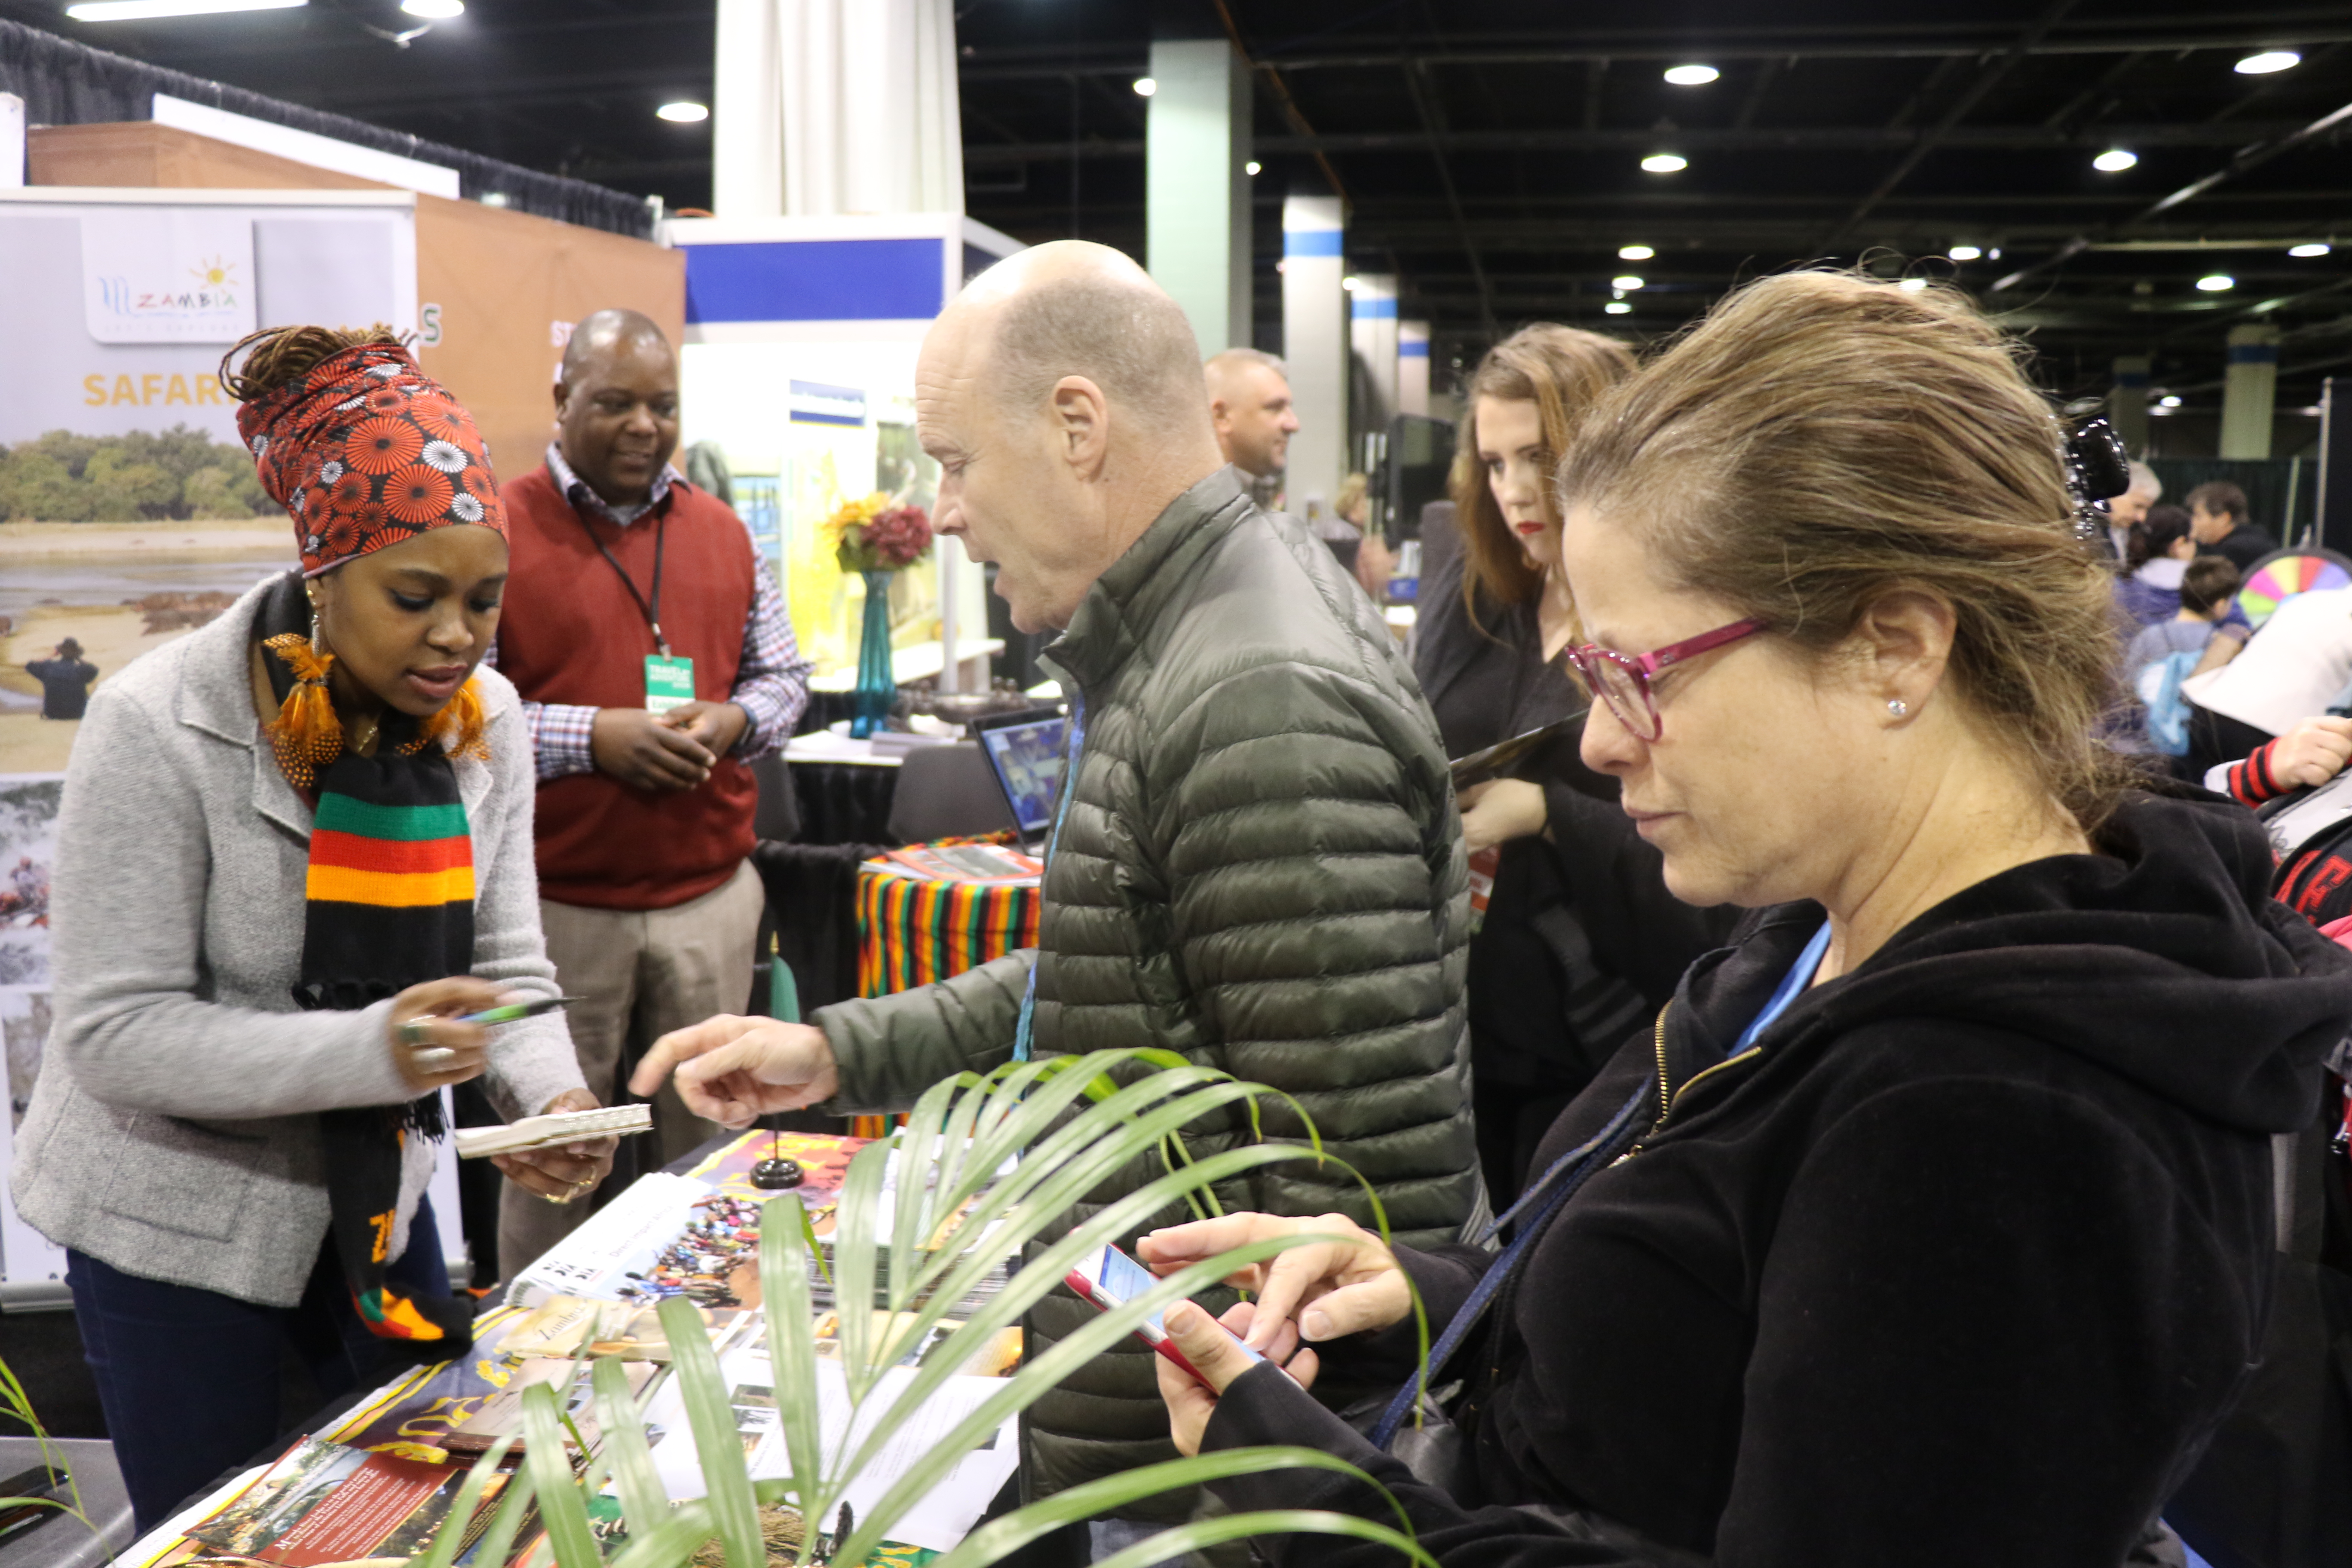 D Exhibition Zambia : Zambian u s mission collaborates with zambians in chicago